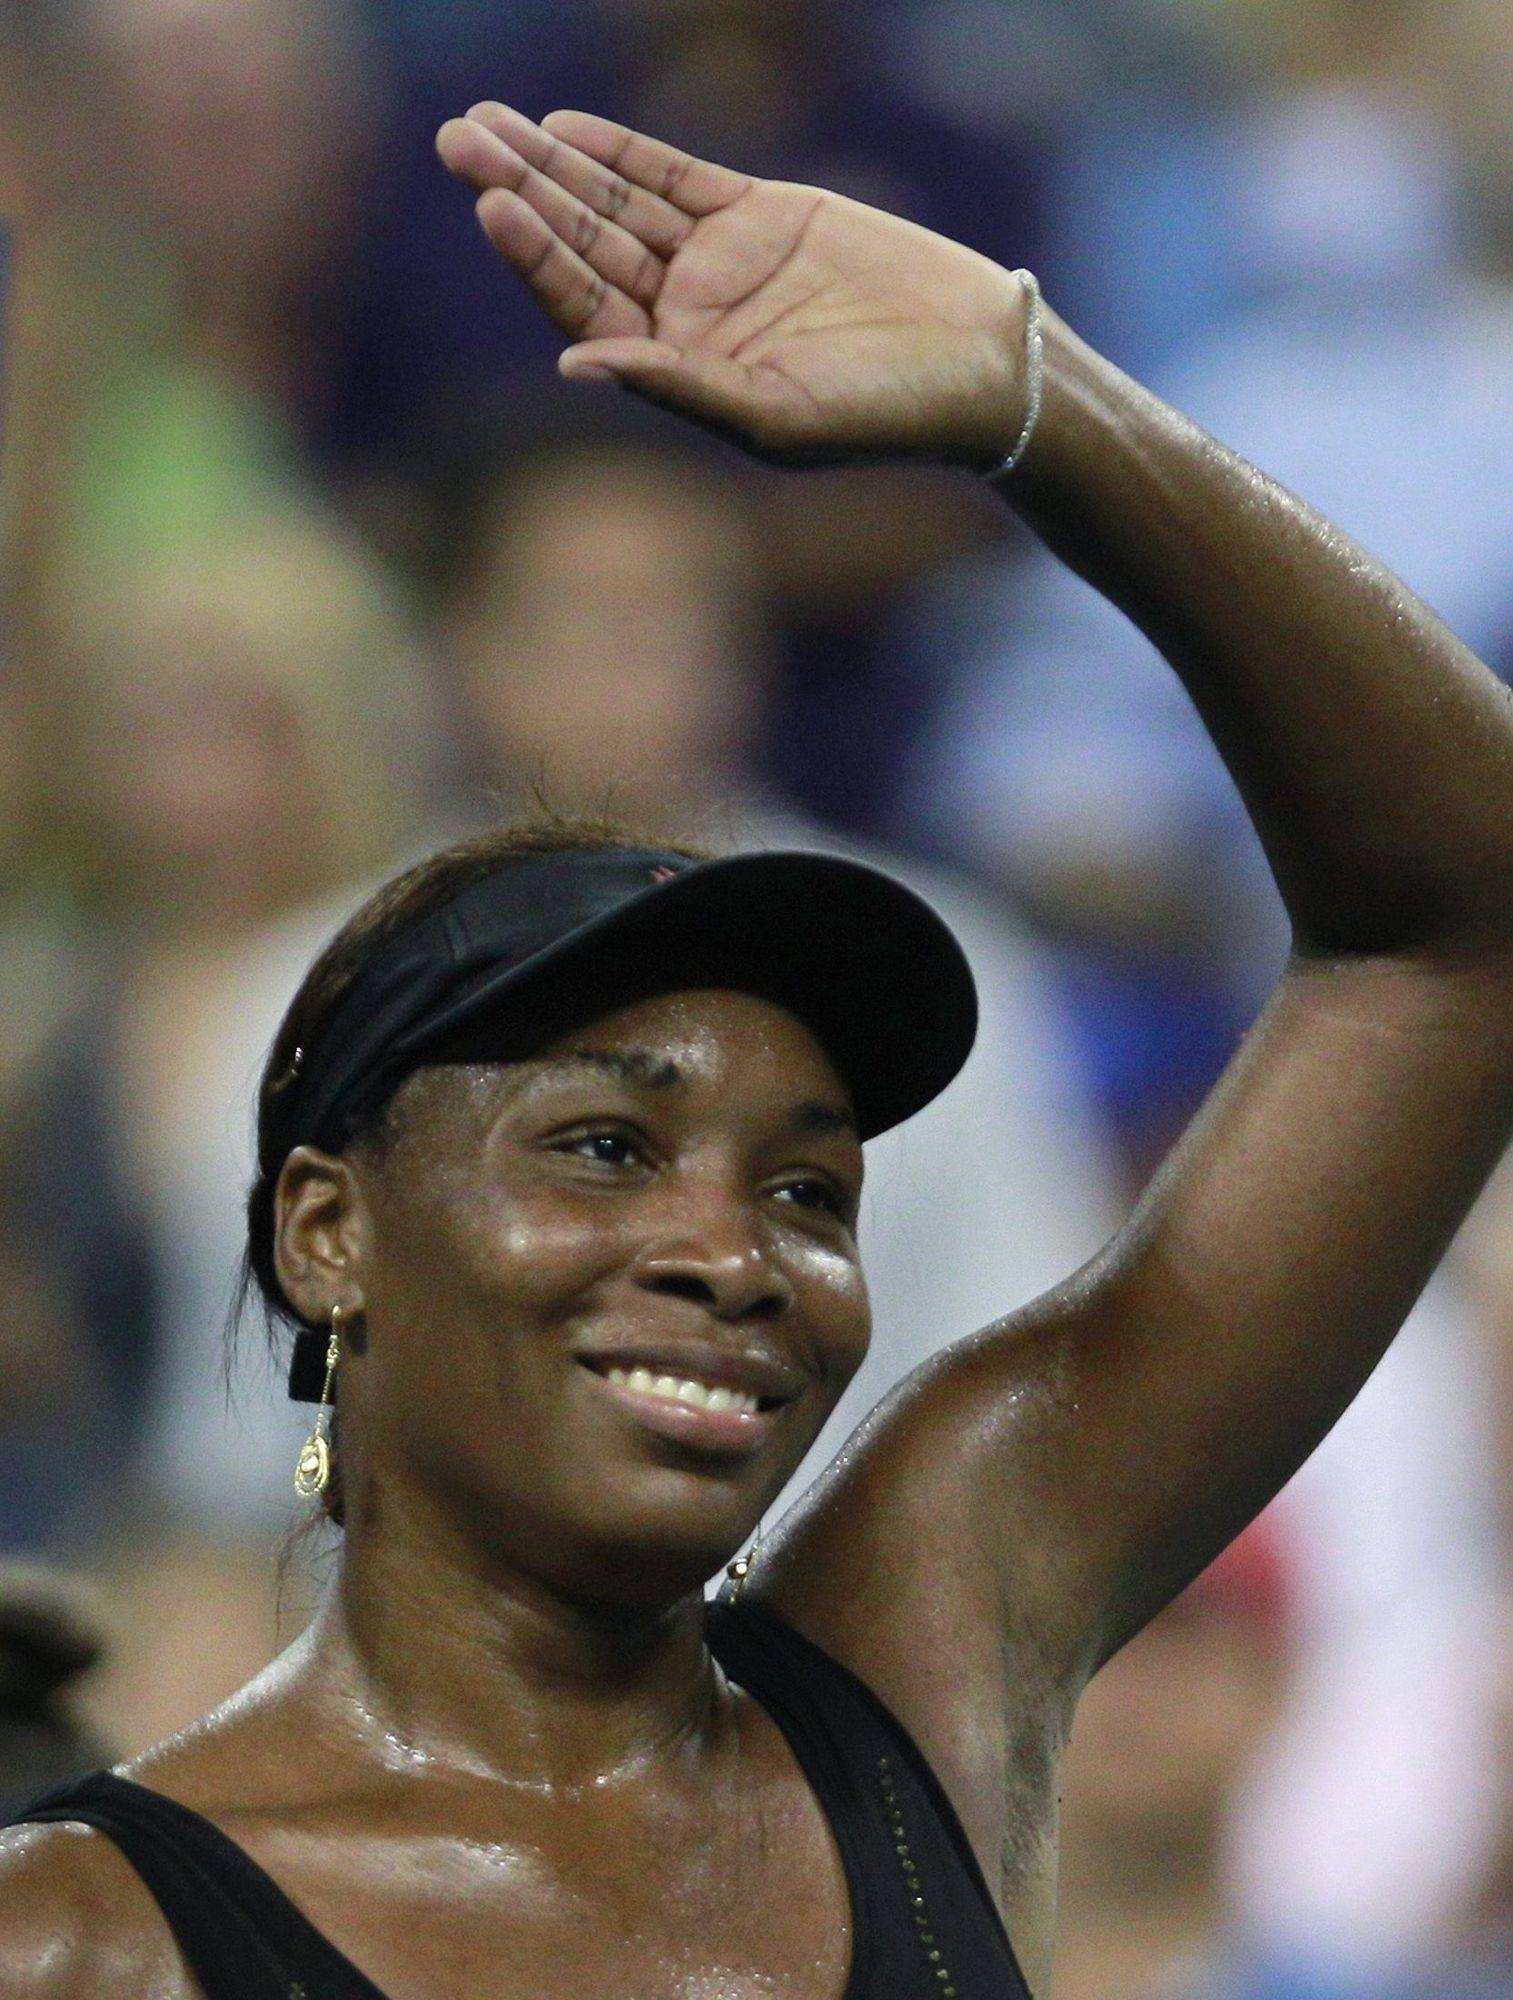 Venus Williams waves to the crowd after her 6-2, 6-1 win over Mandy Minella, of Luxembourg, at the U.S. Open tennis tournament in New York, Friday.